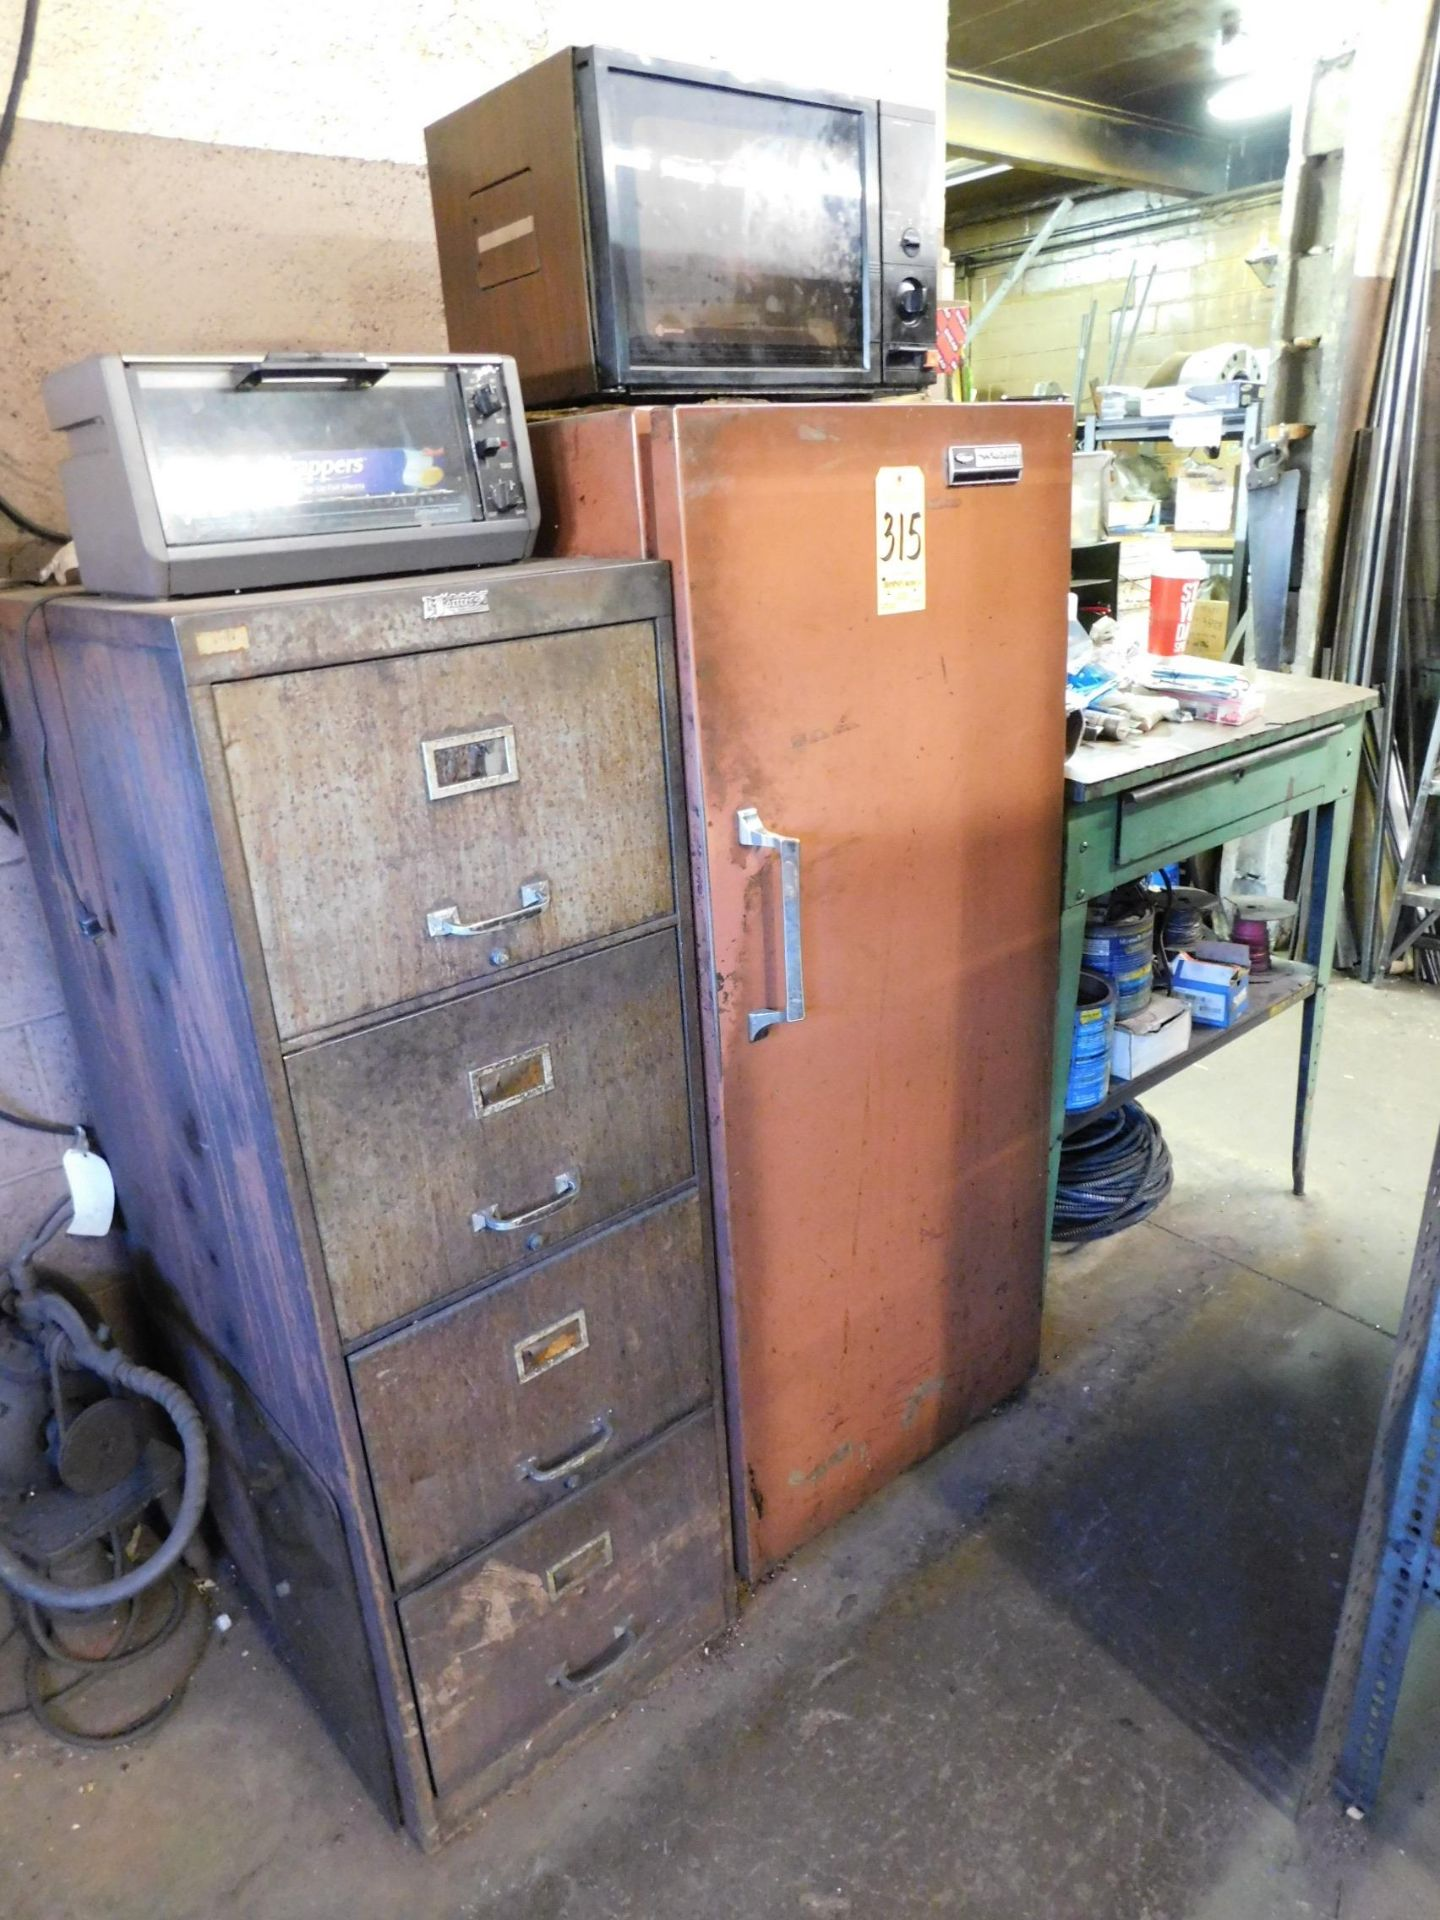 Lot 315 - Whirlpool Refrigerator, 4-Drawer File Cabinet, and Foreman's Desk